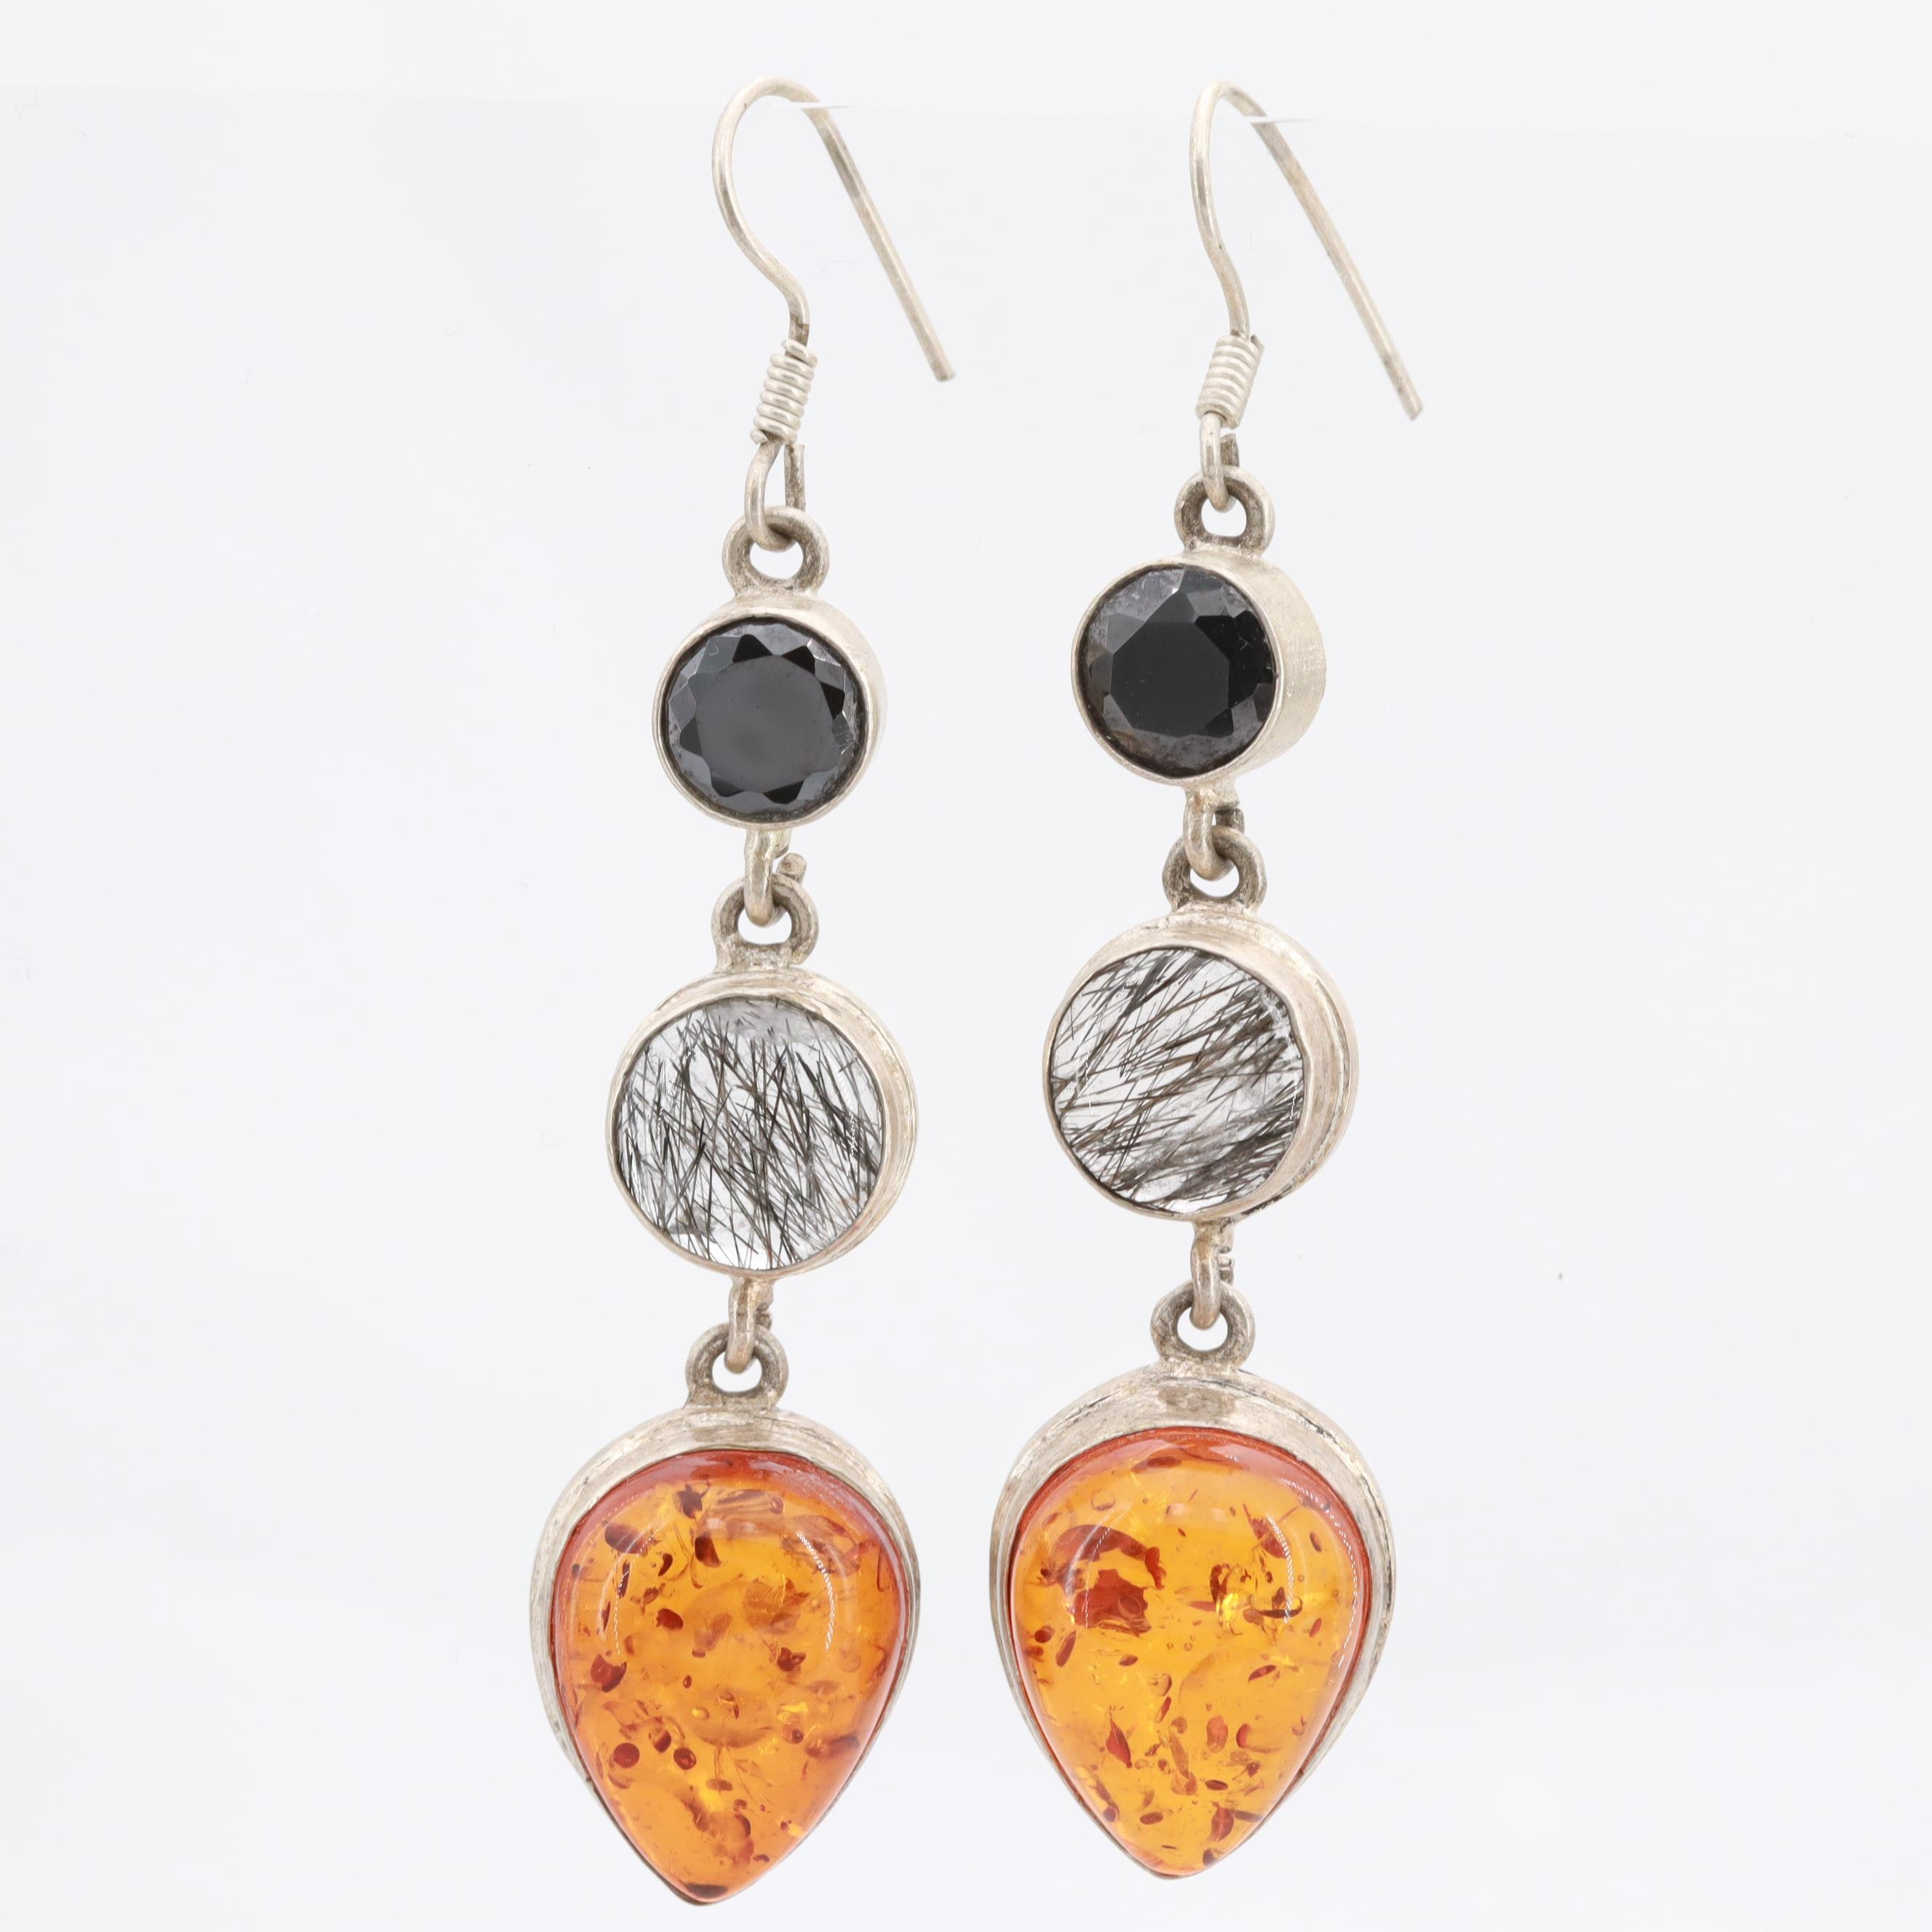 Sterling Silver Black Cubic Zirconia, Tourmalinated Quartz and Amber Earrings